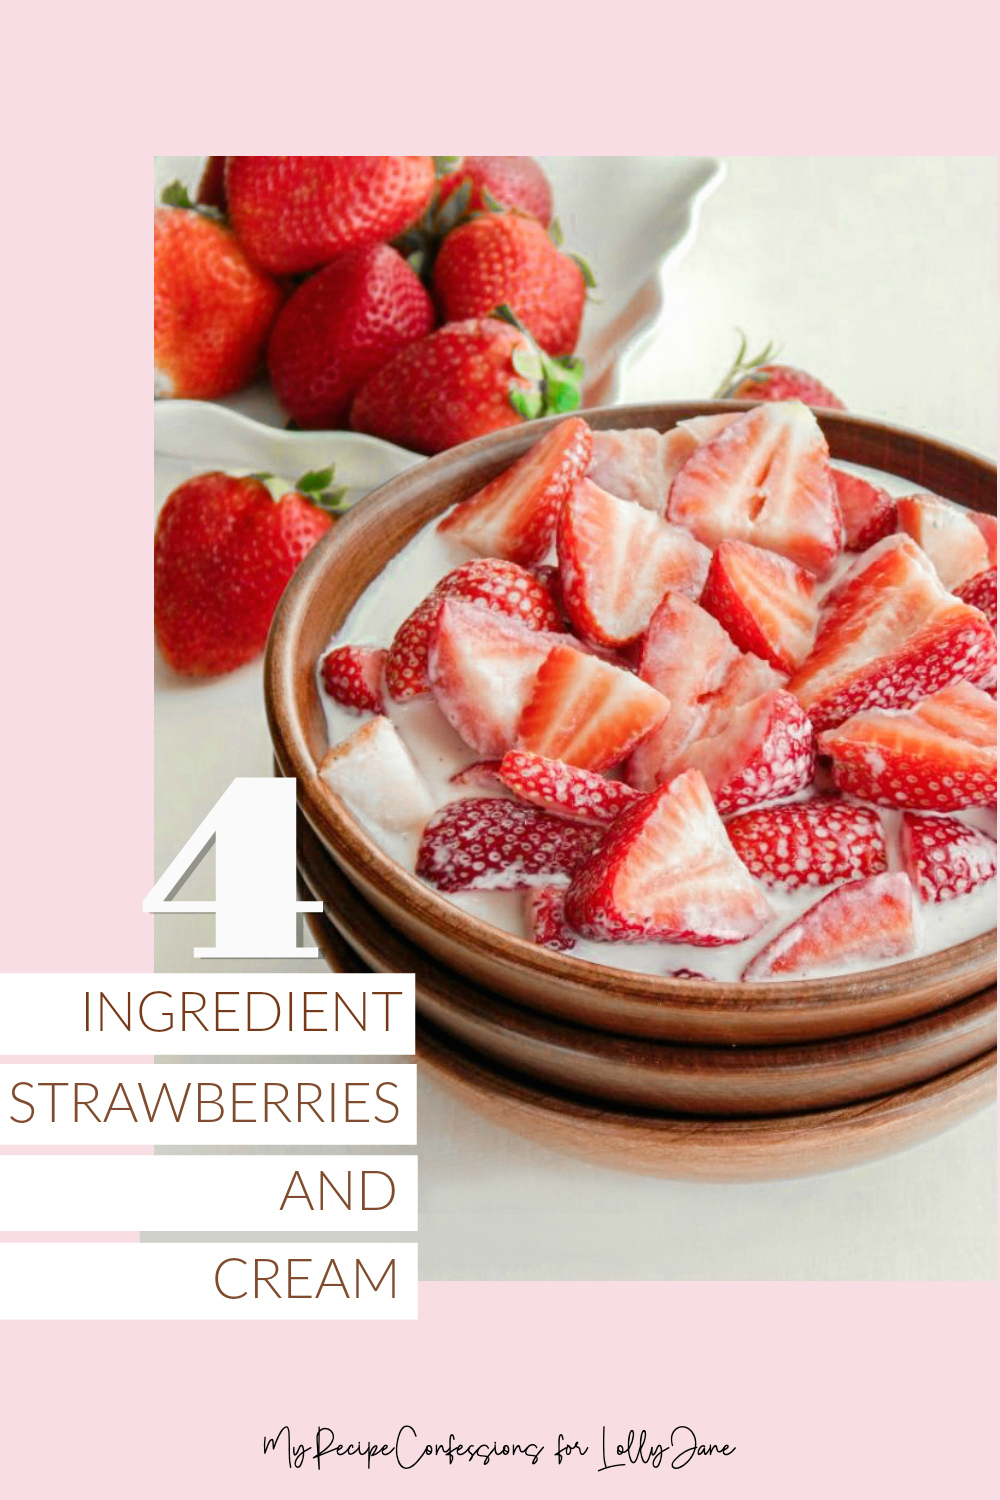 EASY 4-Ingredient Strawberries and Cream Recipe. Mmm! Great for a side, meal, or for a sweet treat! #brunch #easyrecipe #recipe #food #strawberriesandcream #strawberriesandcreamrecipe #breakfast #breakfastrecipe